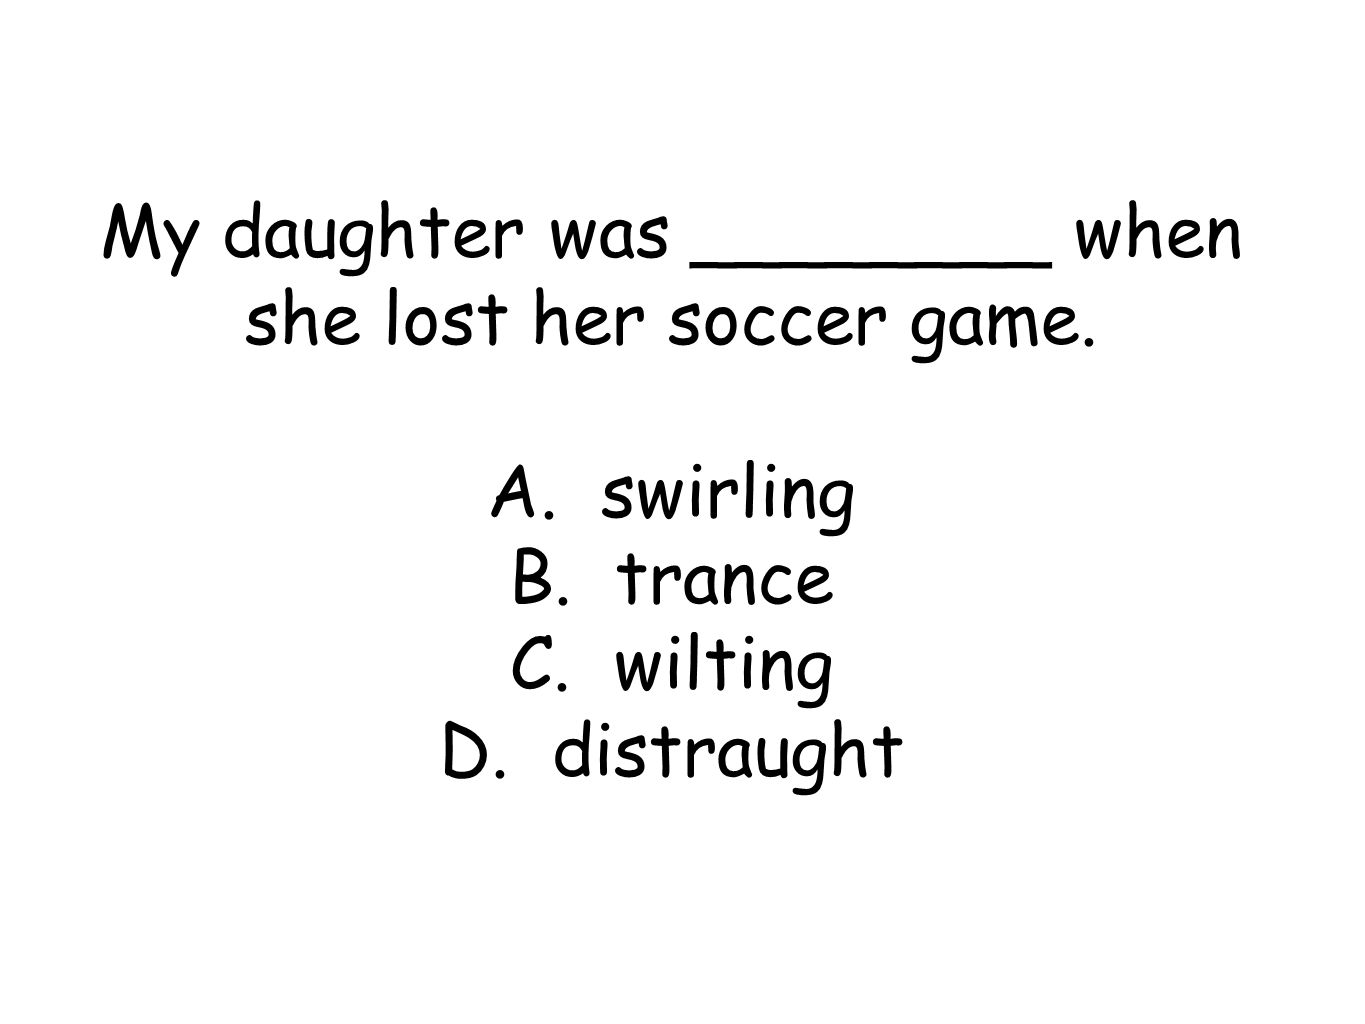 My daughter was ________ when she lost her soccer game.